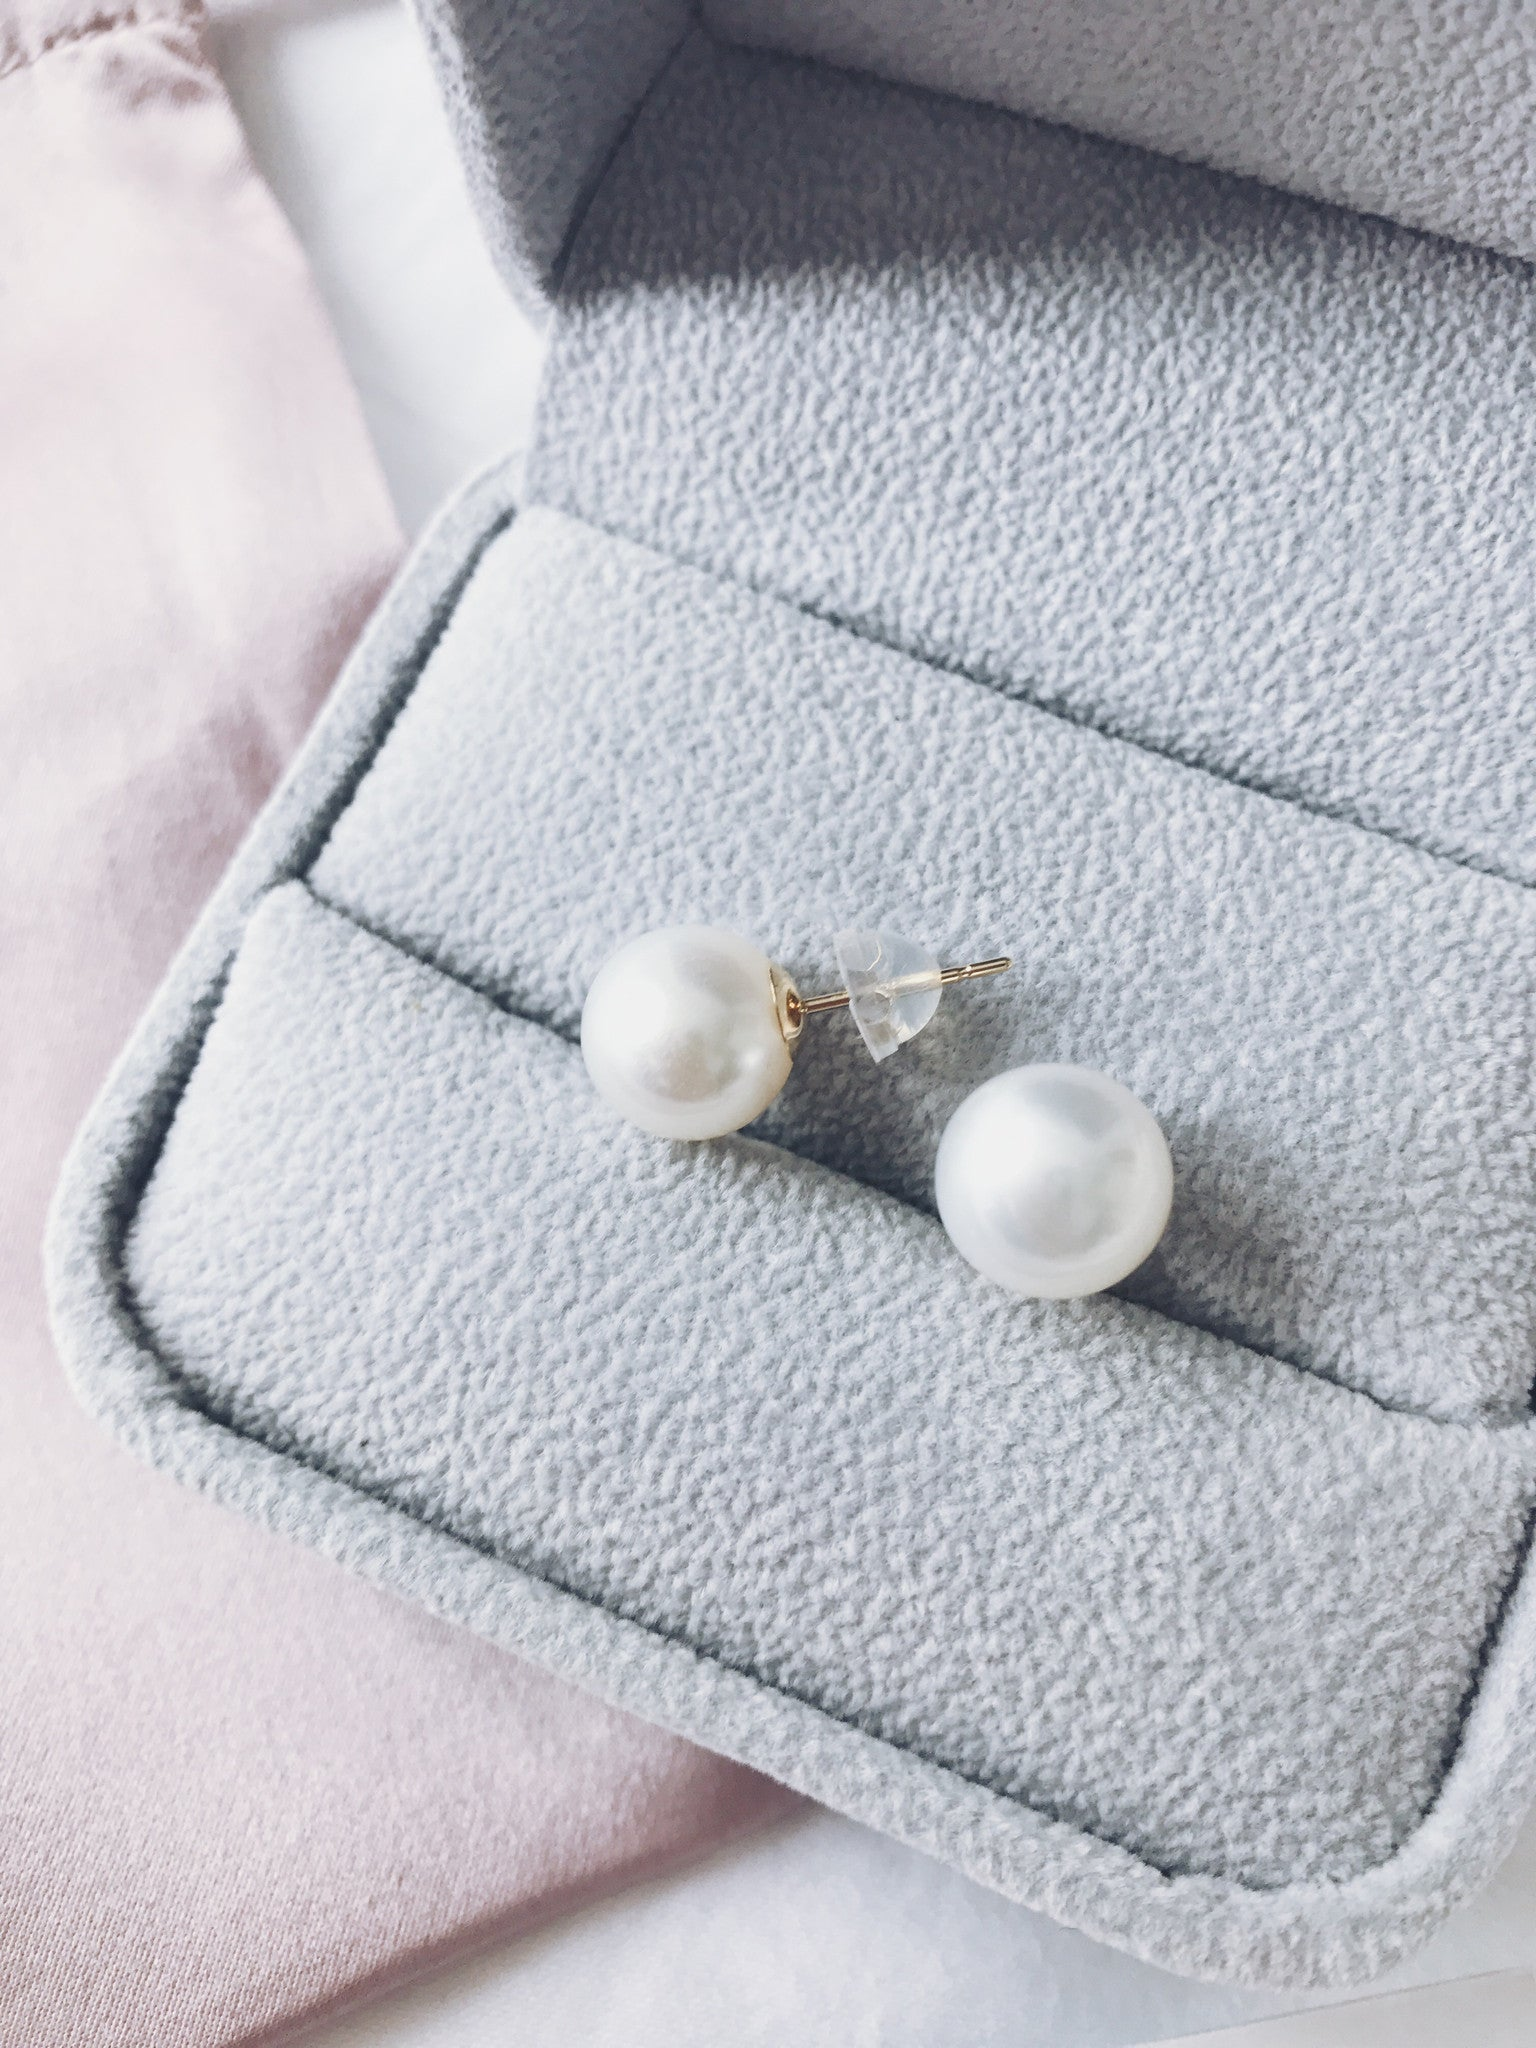 17562c372 Signature 11-12mm Flawless White South Sea Pearl Stud Earrings ...